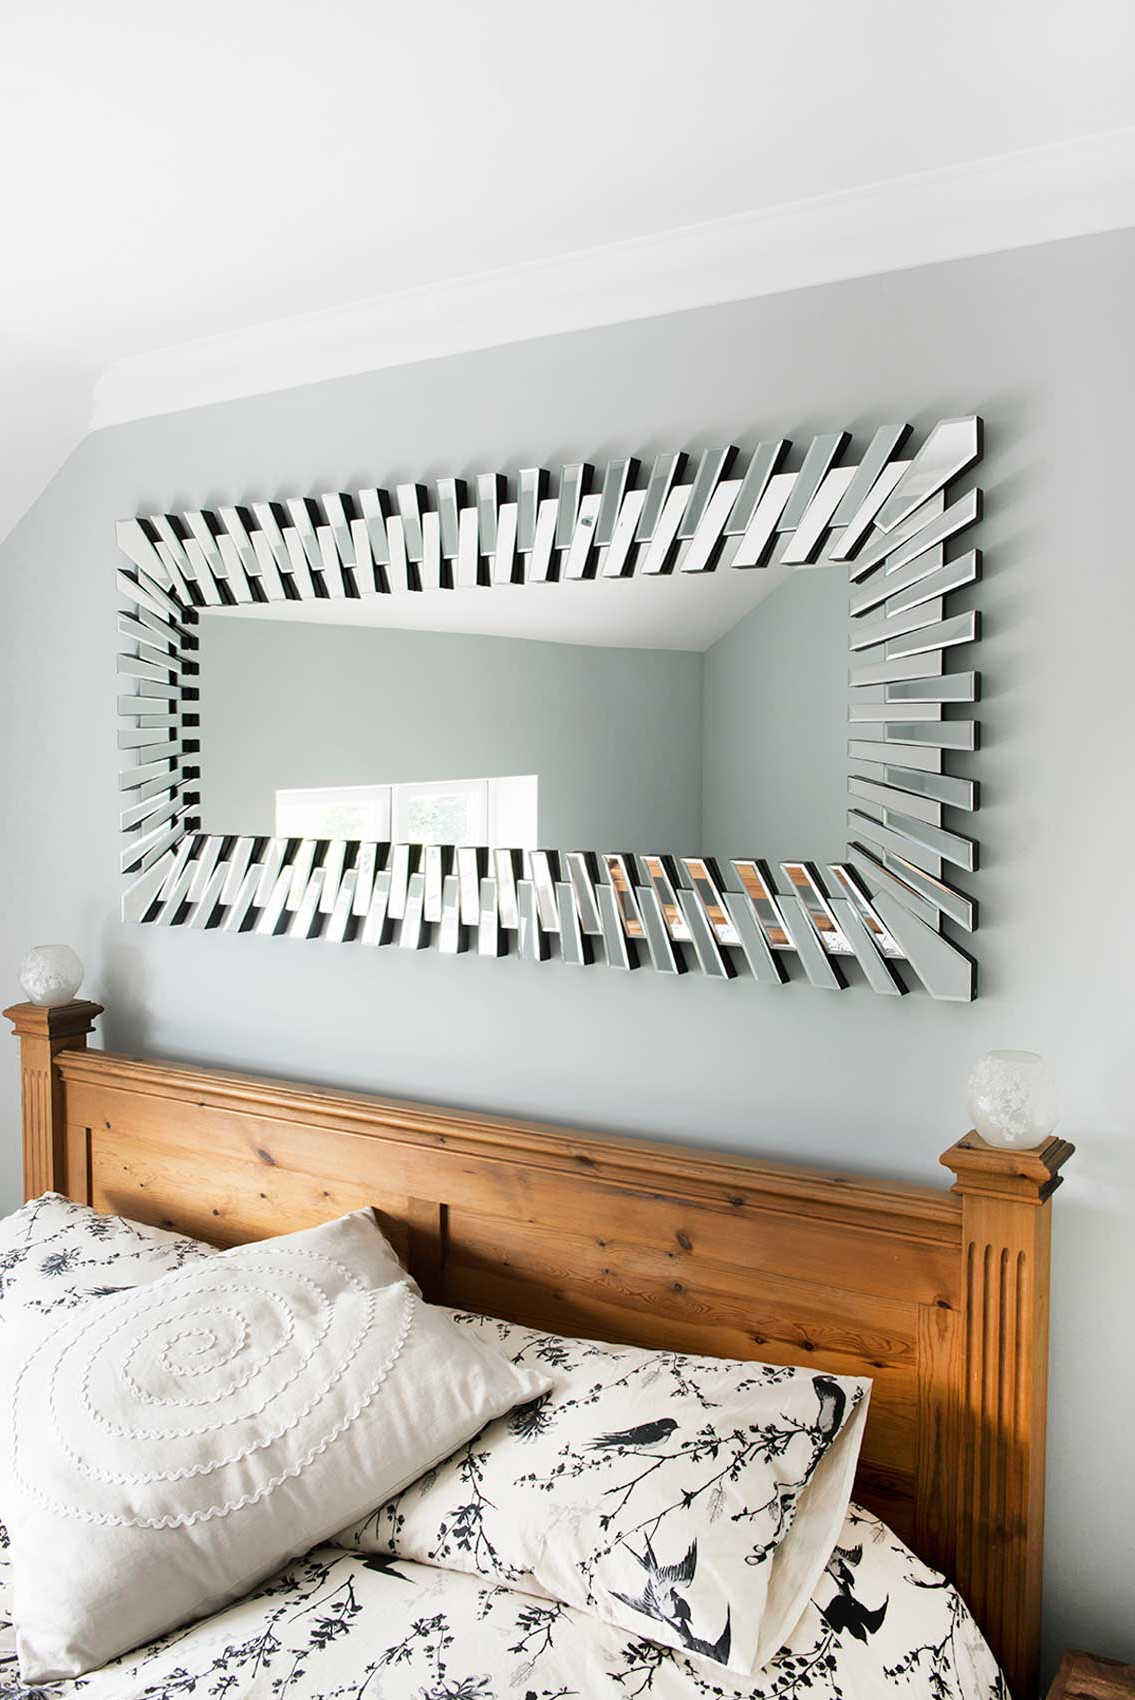 Newest Modern Rectangular Wall Mirrors Within Details About Extra Large Modern Unique 3d Sunburst All Glass Venetian  Rectangular Wall Mirror (View 4 of 20)